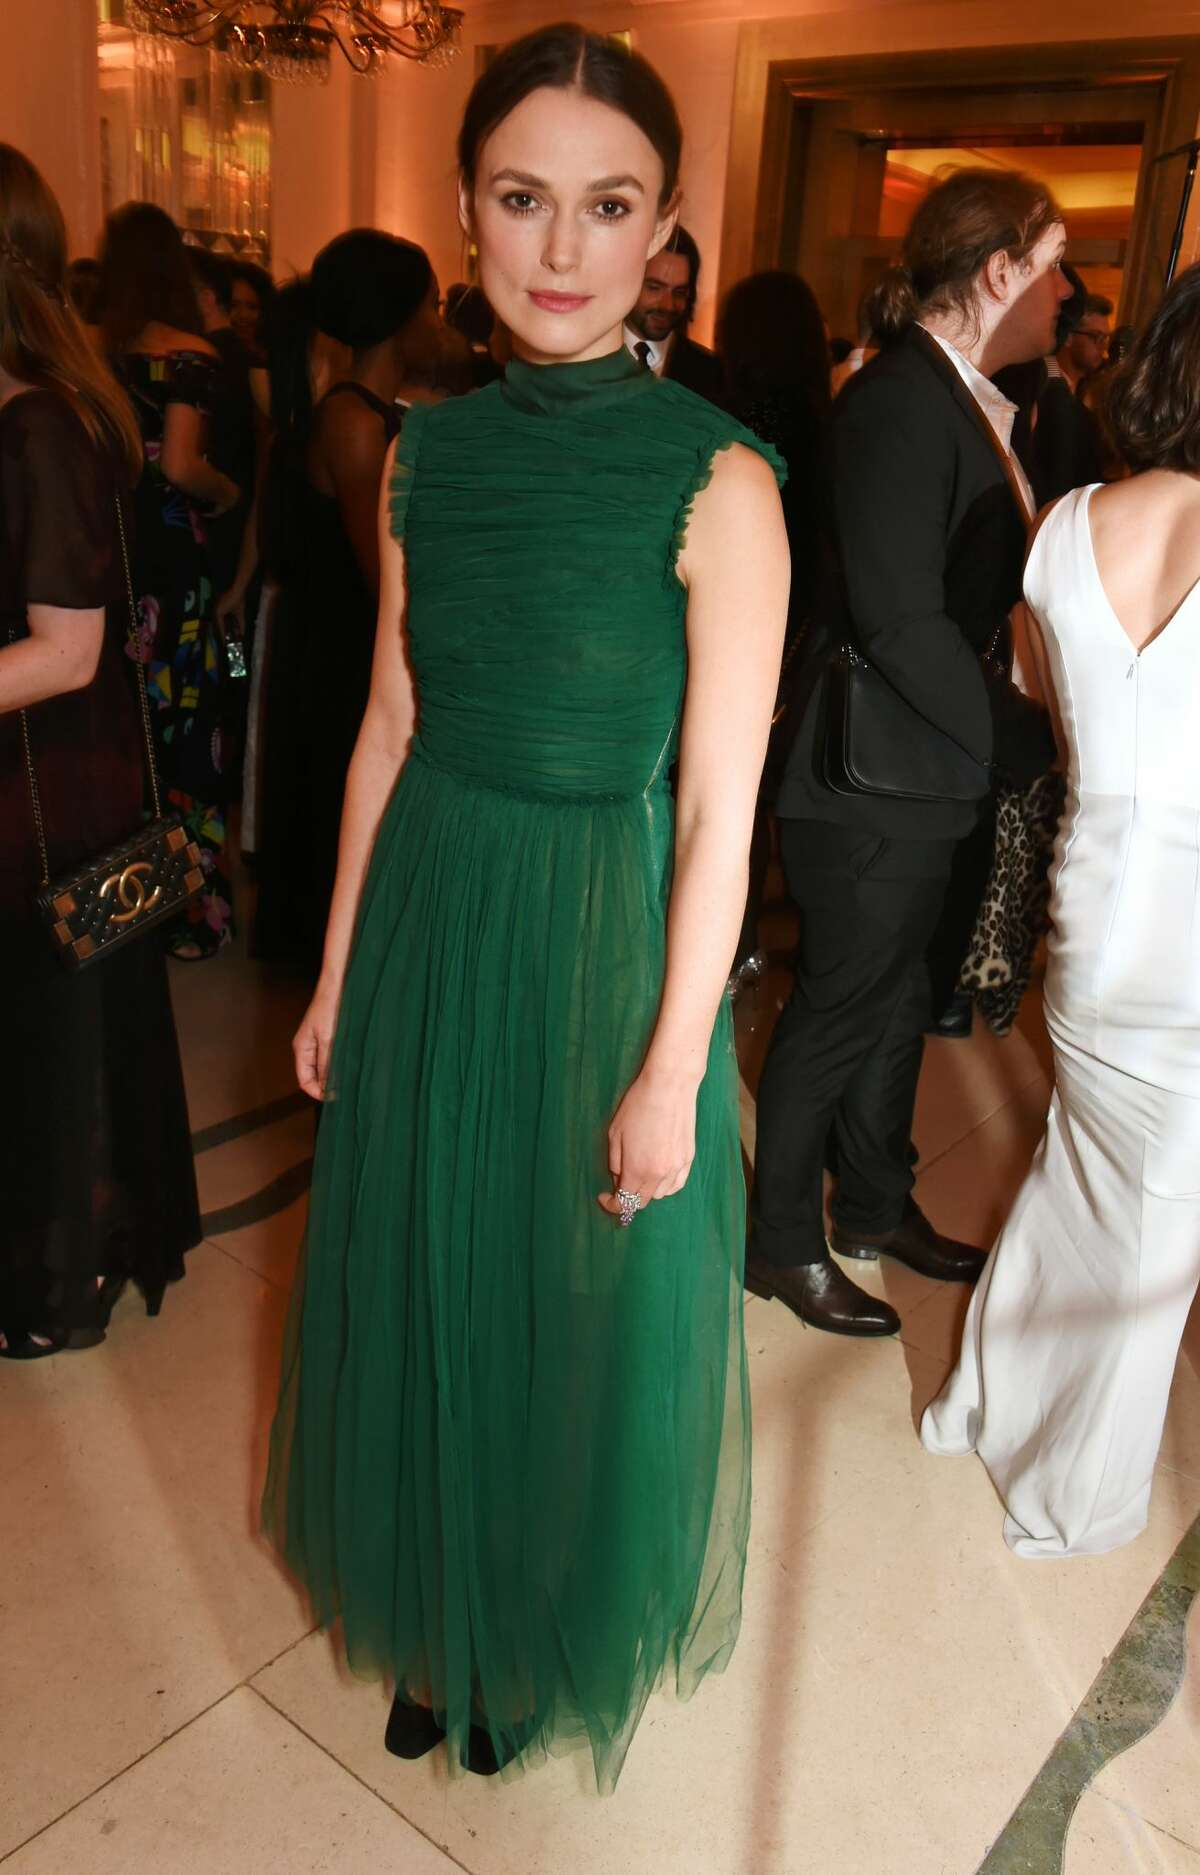 Keira Knightley attends a party in London in 2016.